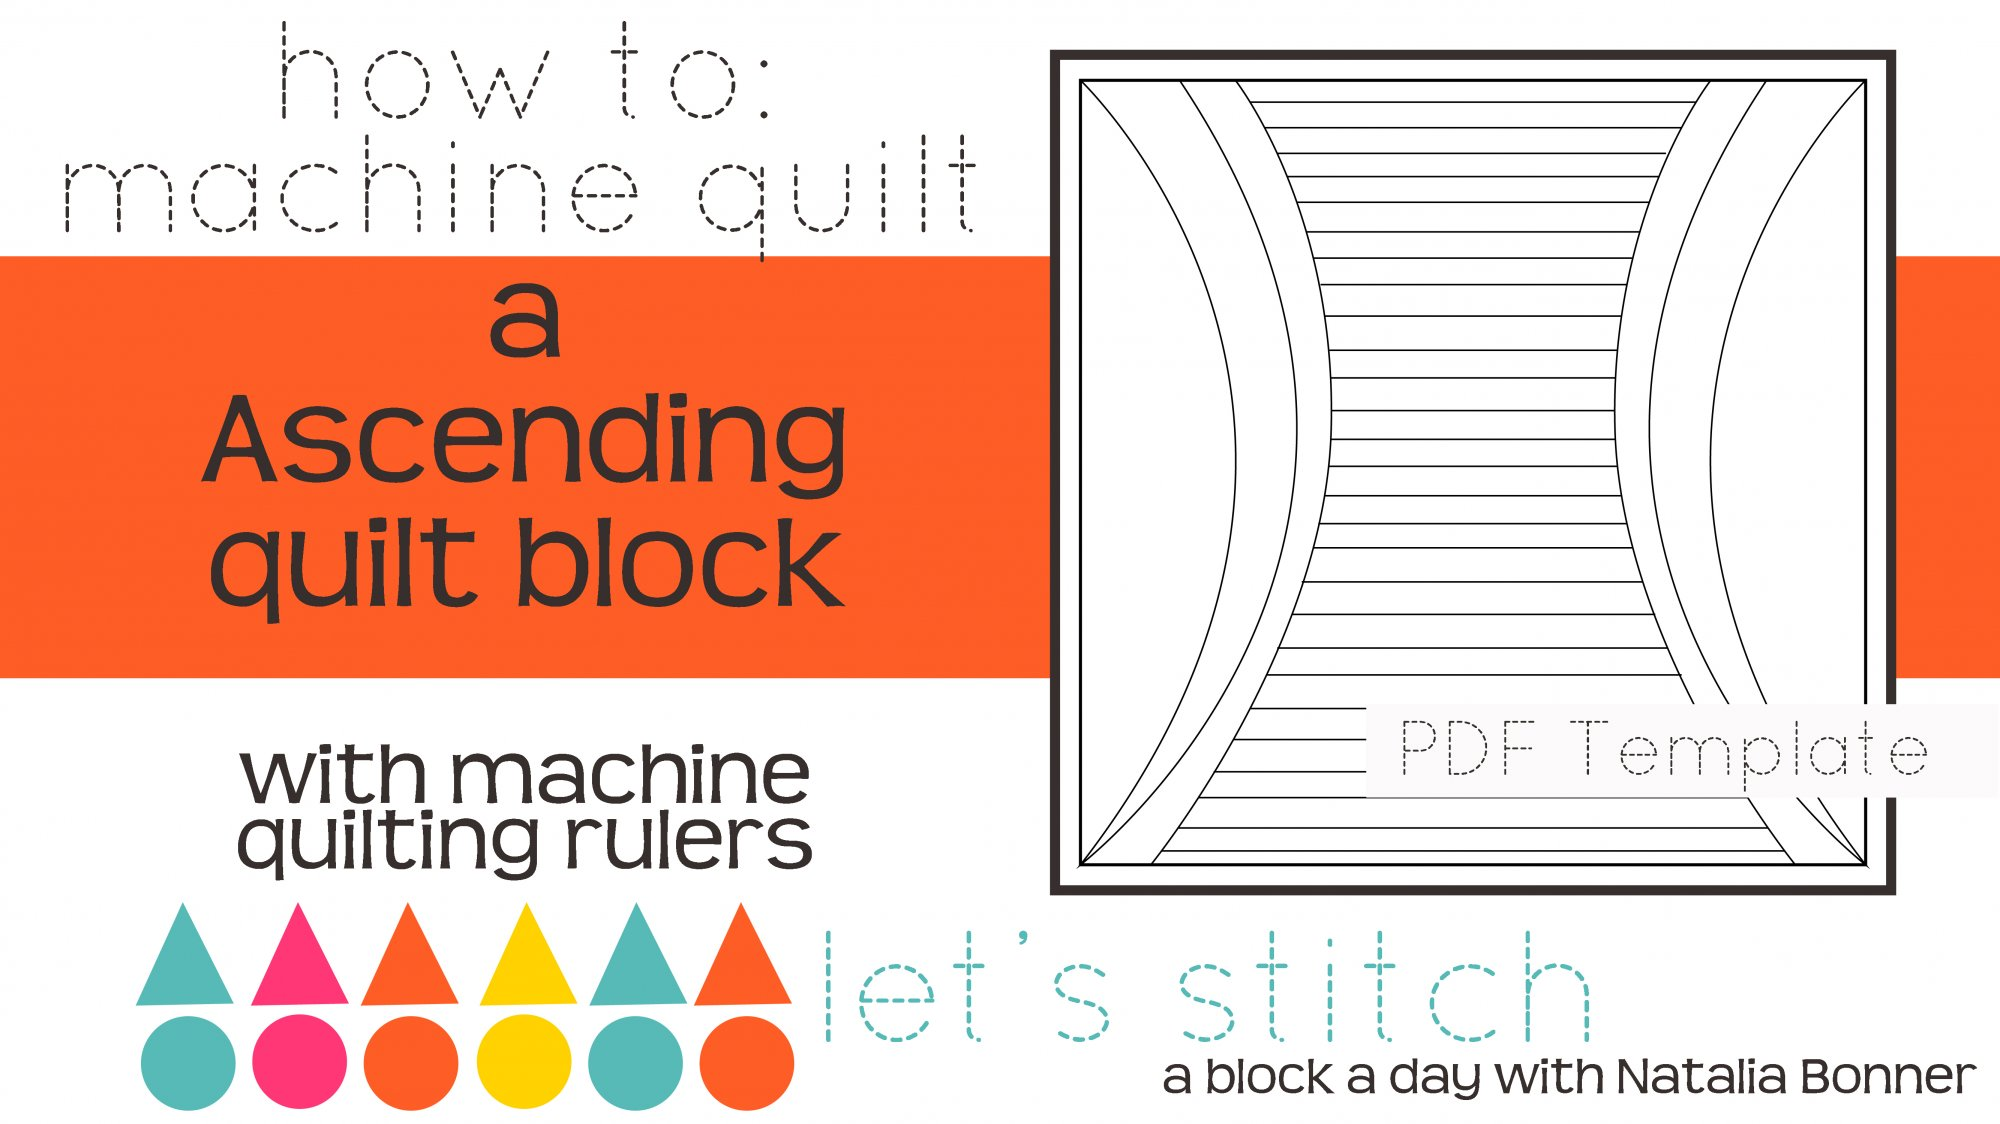 Let's Stitch - A Block a Day With Natalia Bonner - PDF - Ascending